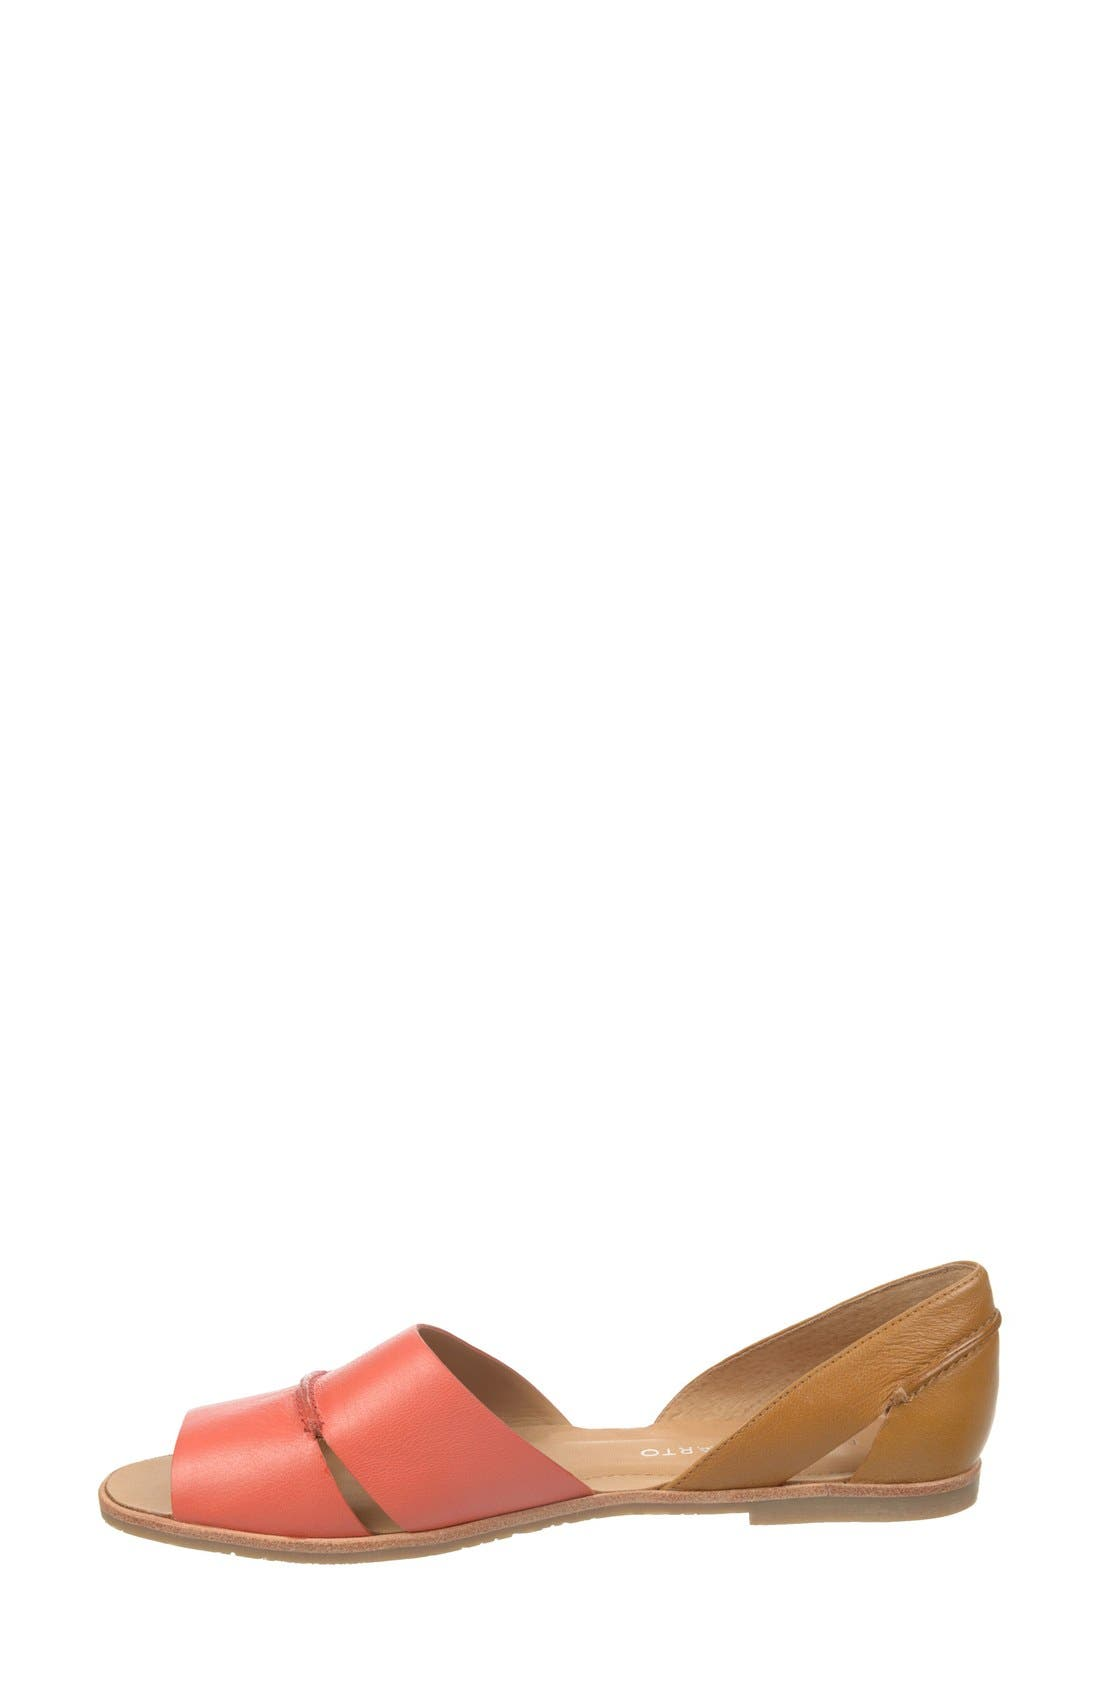 'Vivace' Leather d'Orsay Flat,                             Alternate thumbnail 2, color,                             Coral/ Tan